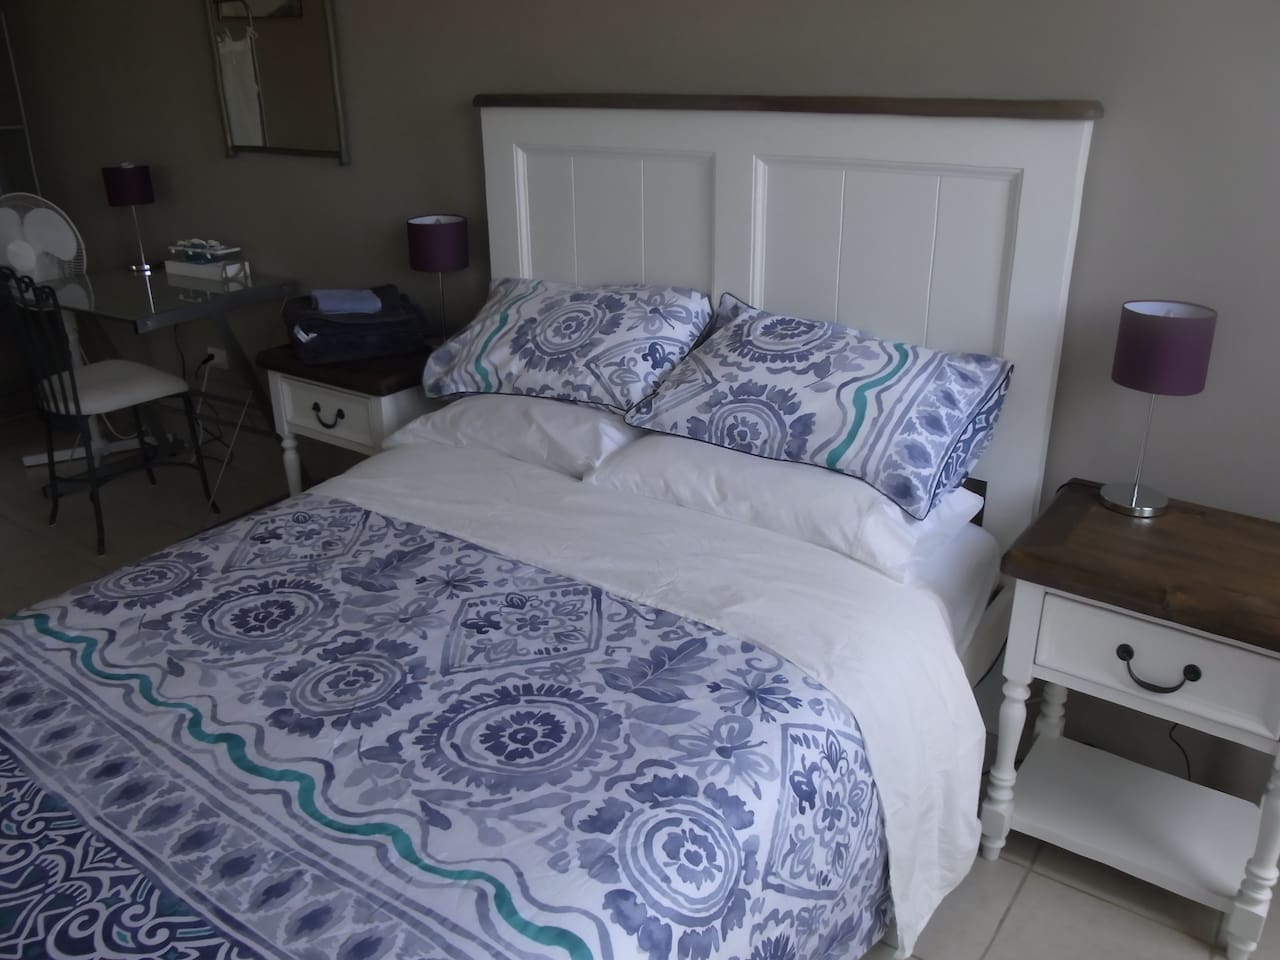 Bedroom 1 is large and airy. New double bed. Extra portable beds and cot available.